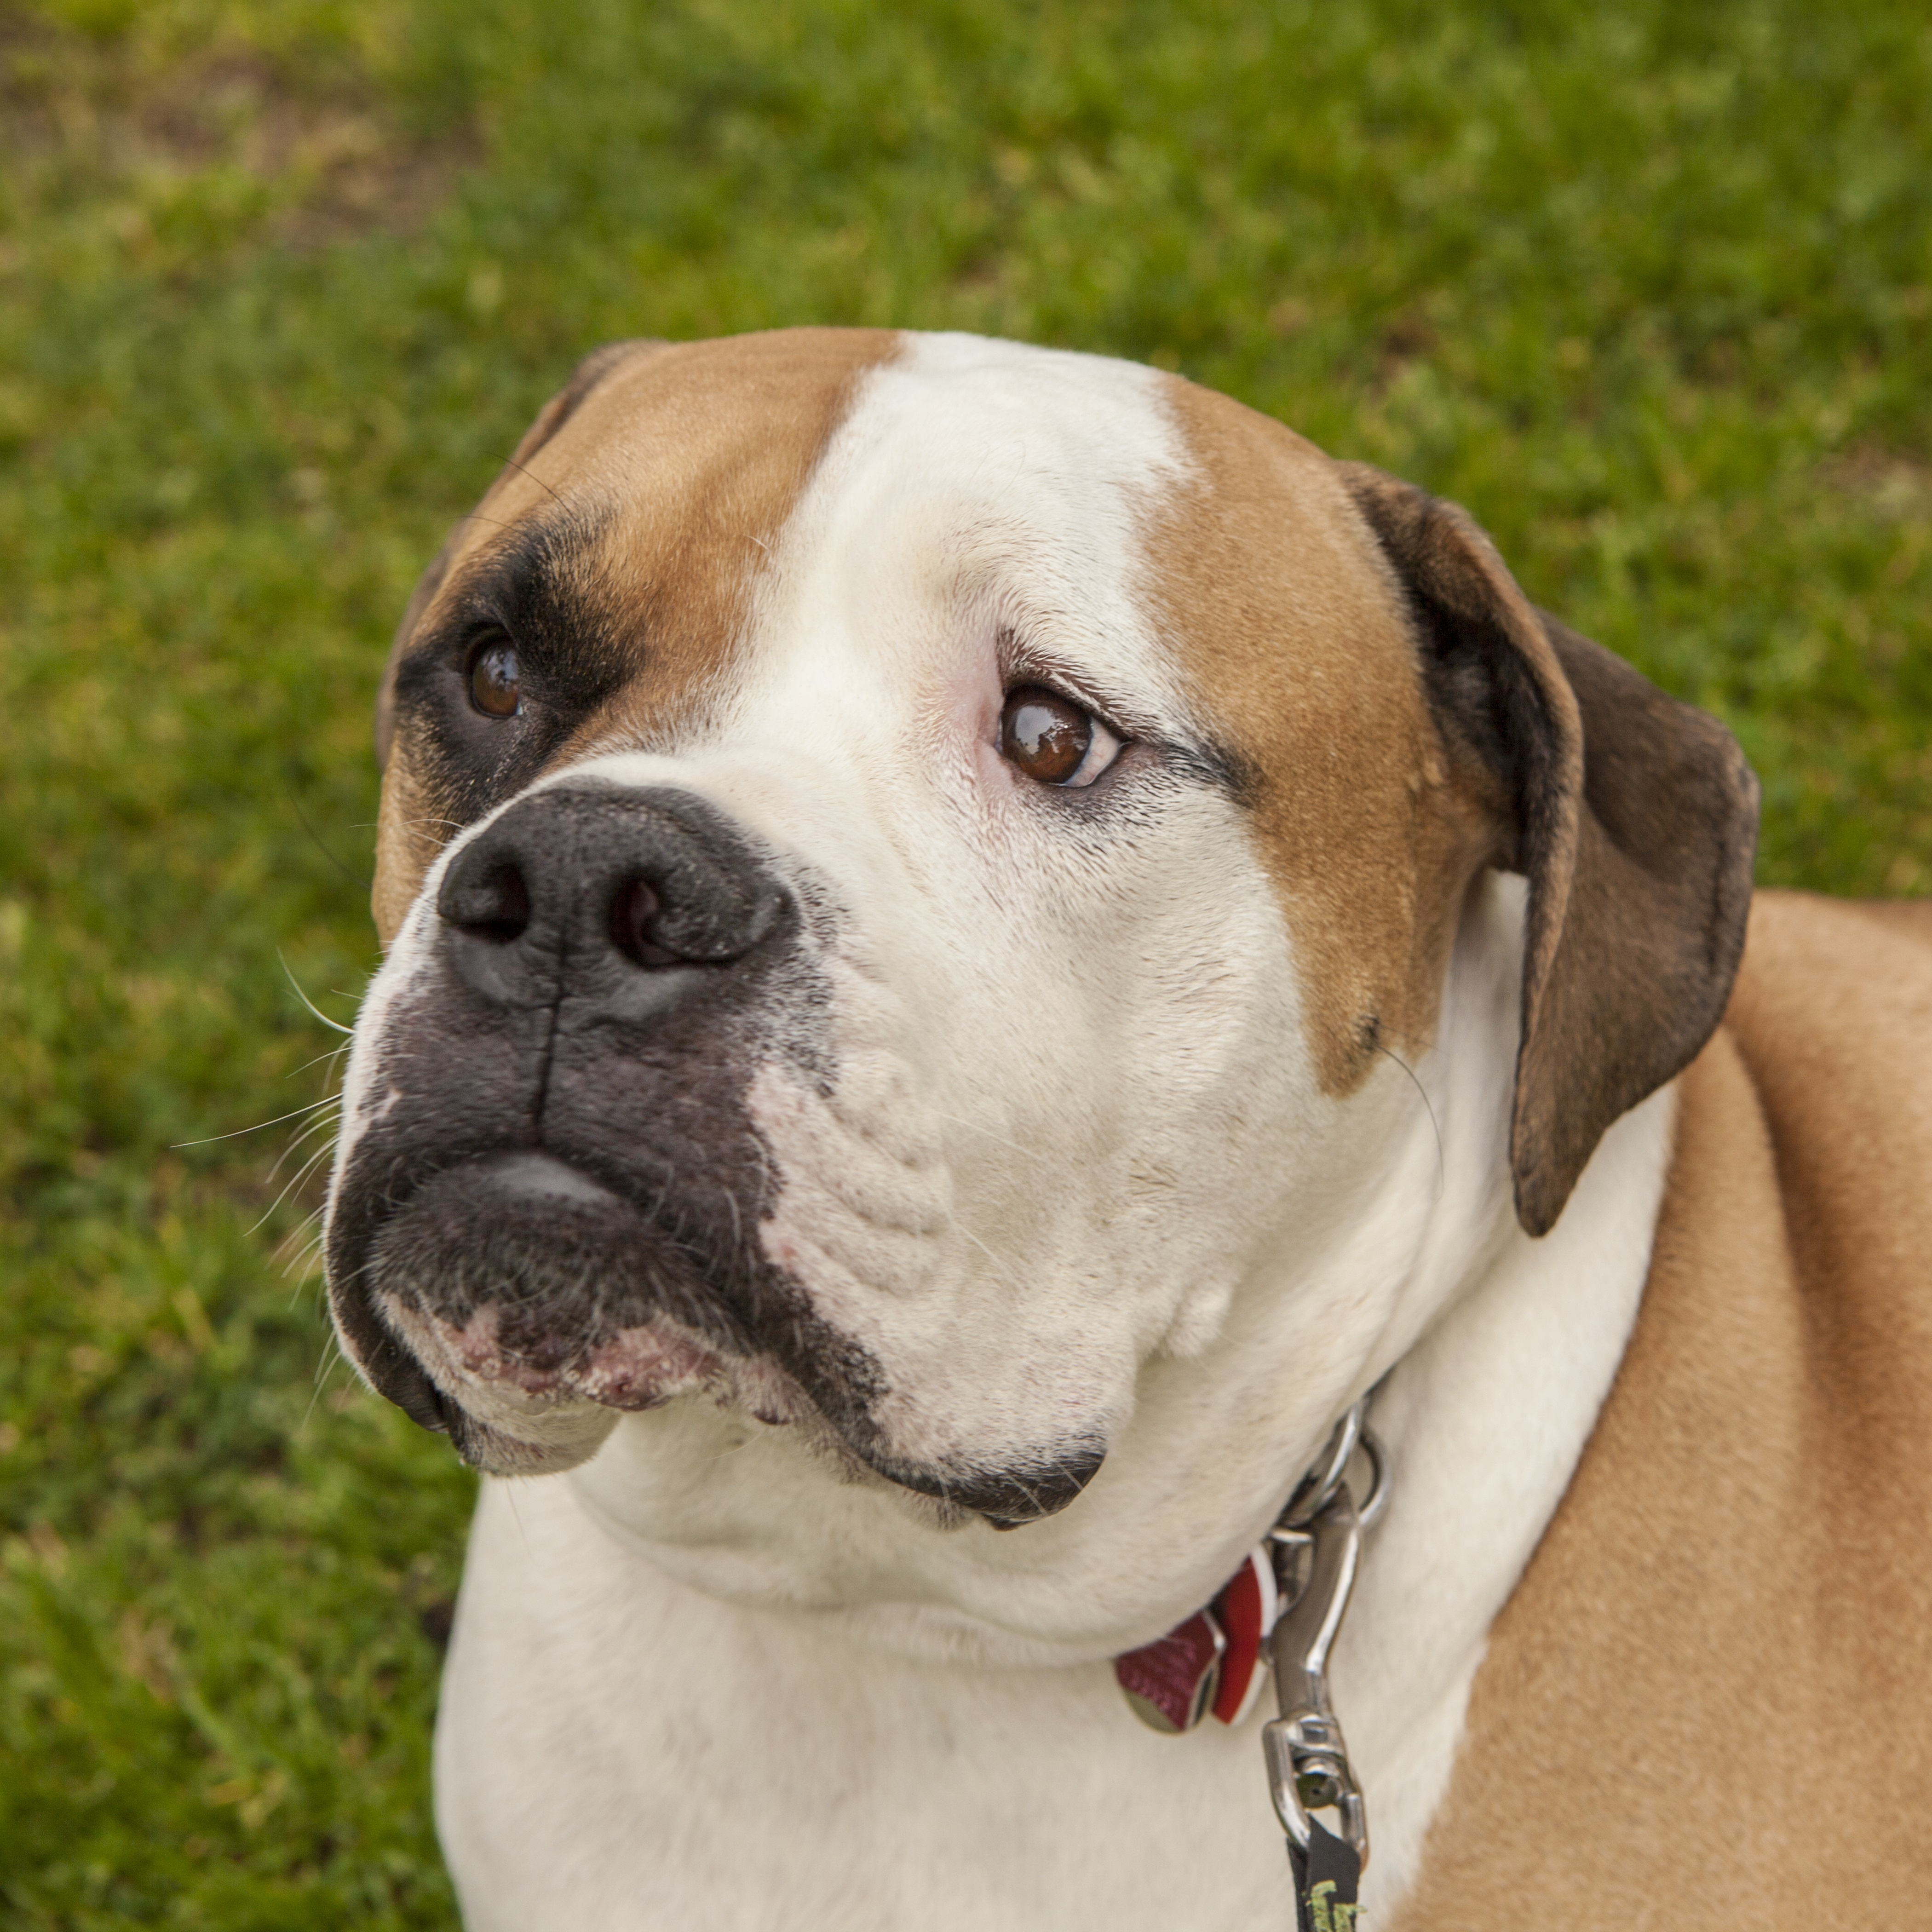 Valley Bulldog Mixed Dog Breed Pictures, Characteristics ...